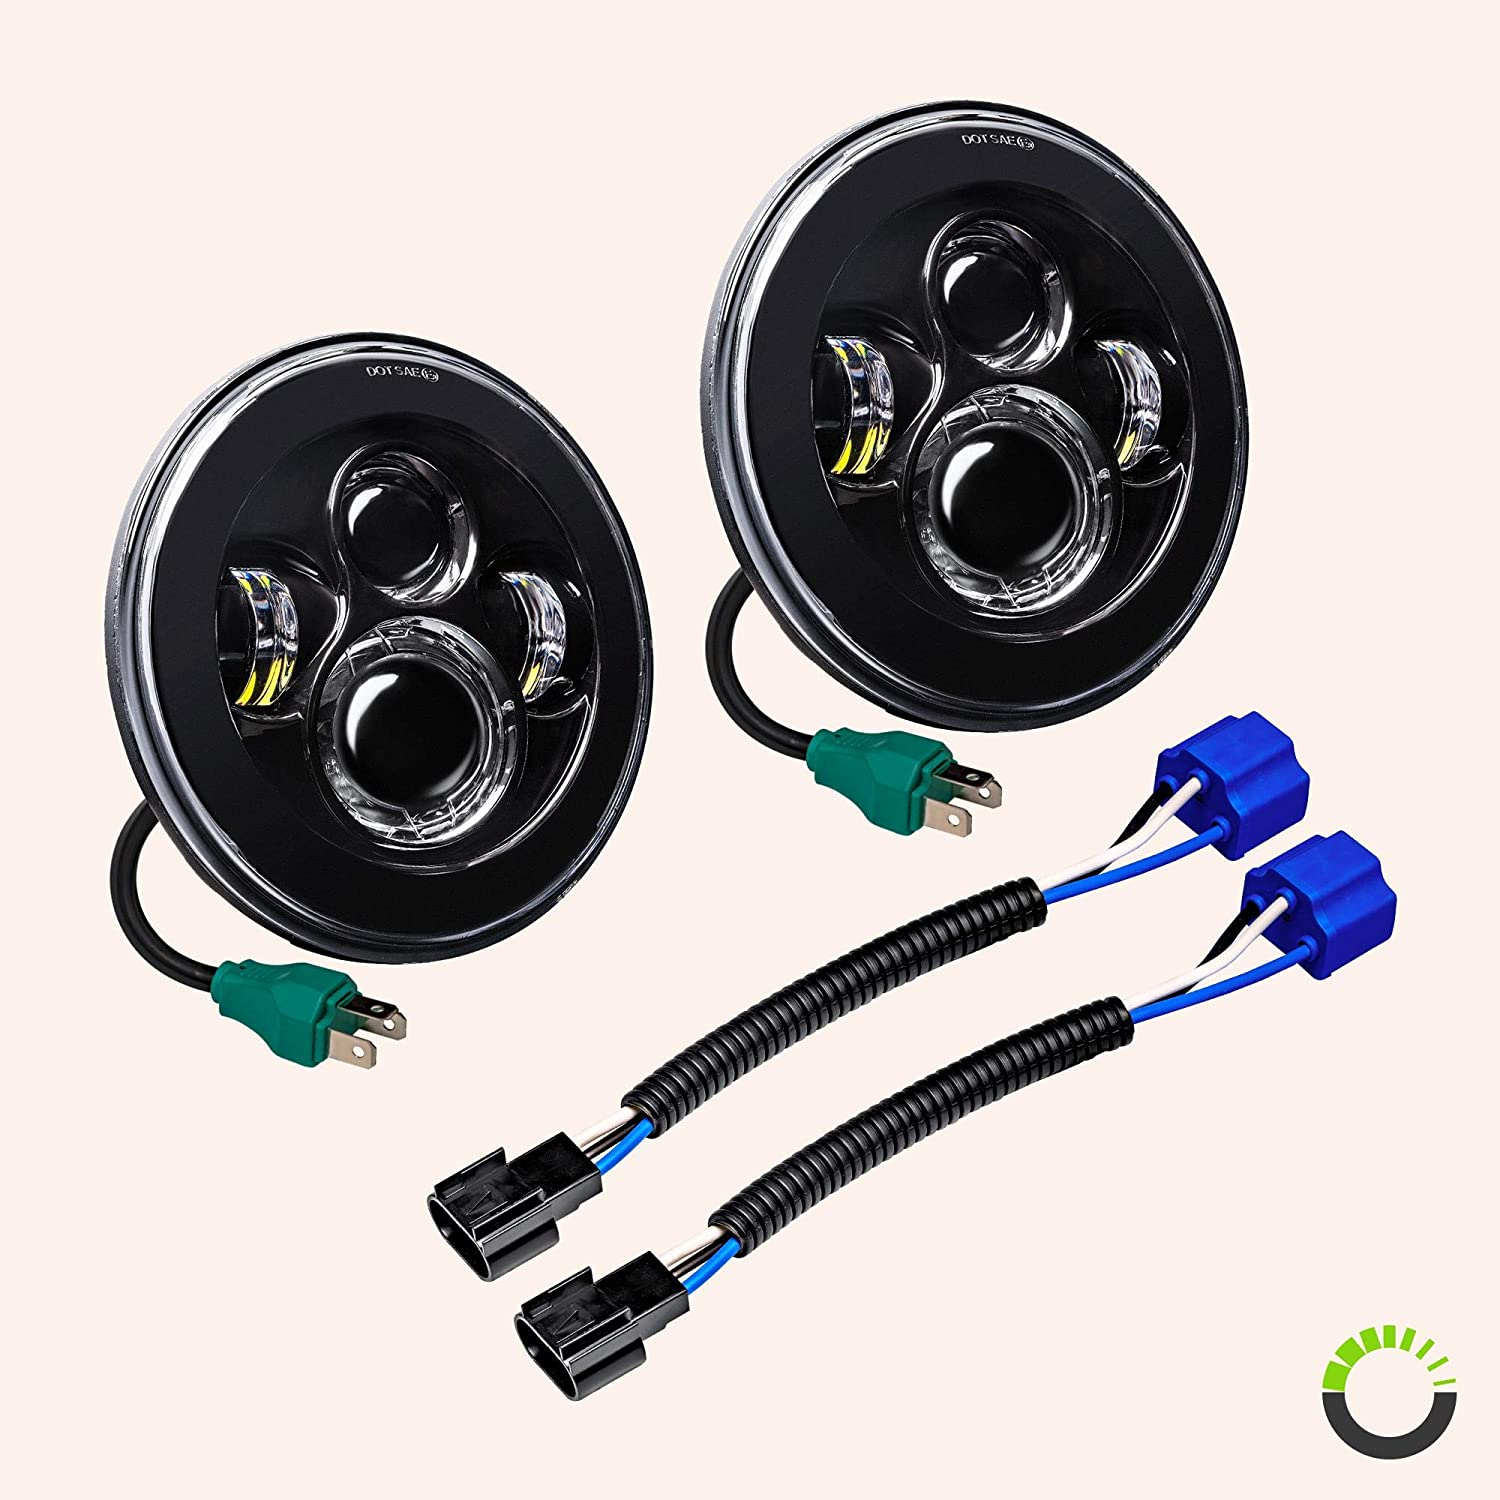 7 Round CREE LED Headlights for Jeep Wrangler JK TJ LC CJ Hummer H1 H2 Built-In CANBus H4 Plug n Play 4500 Lumens - Accessories for Jeep Wrangler 1987-2018 Head Lights